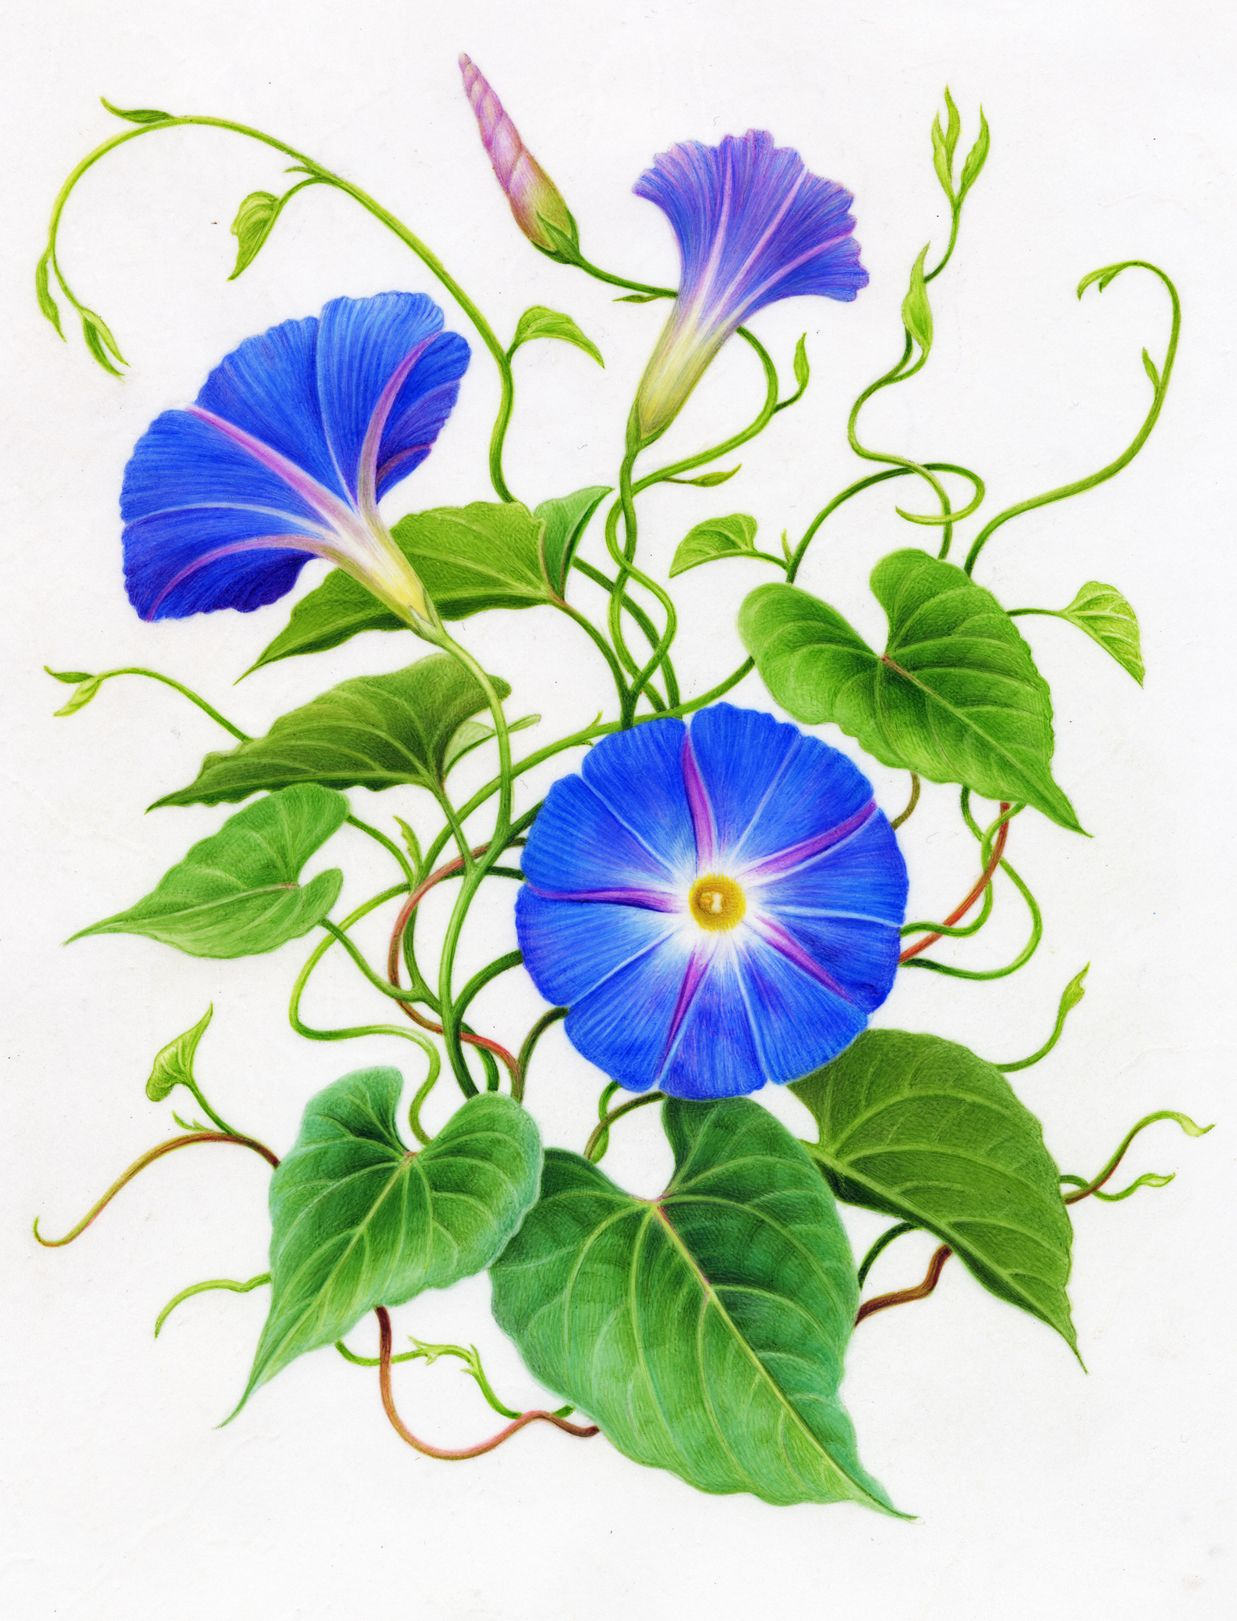 Morning Glory Flower painting, Floral painting